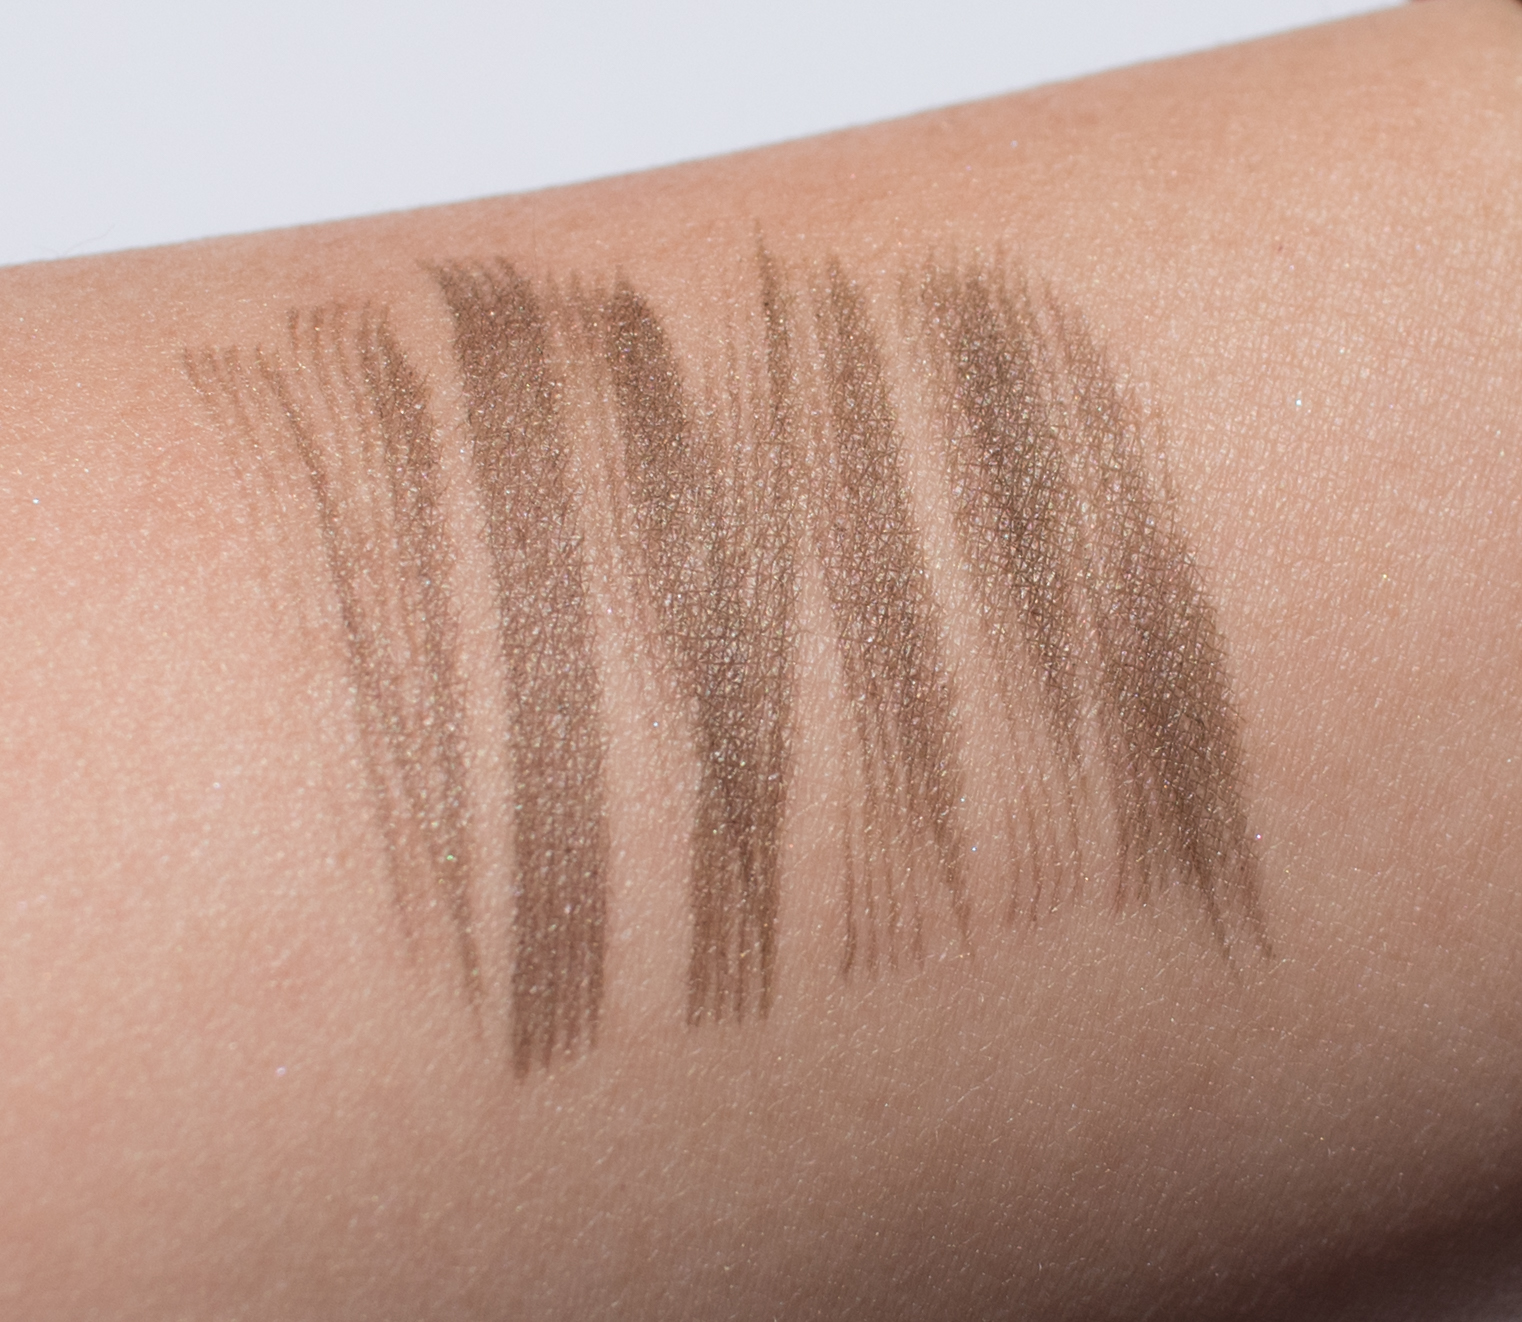 Maybelline TattooStudio Brow Tint Pen Makeup Review Swatch